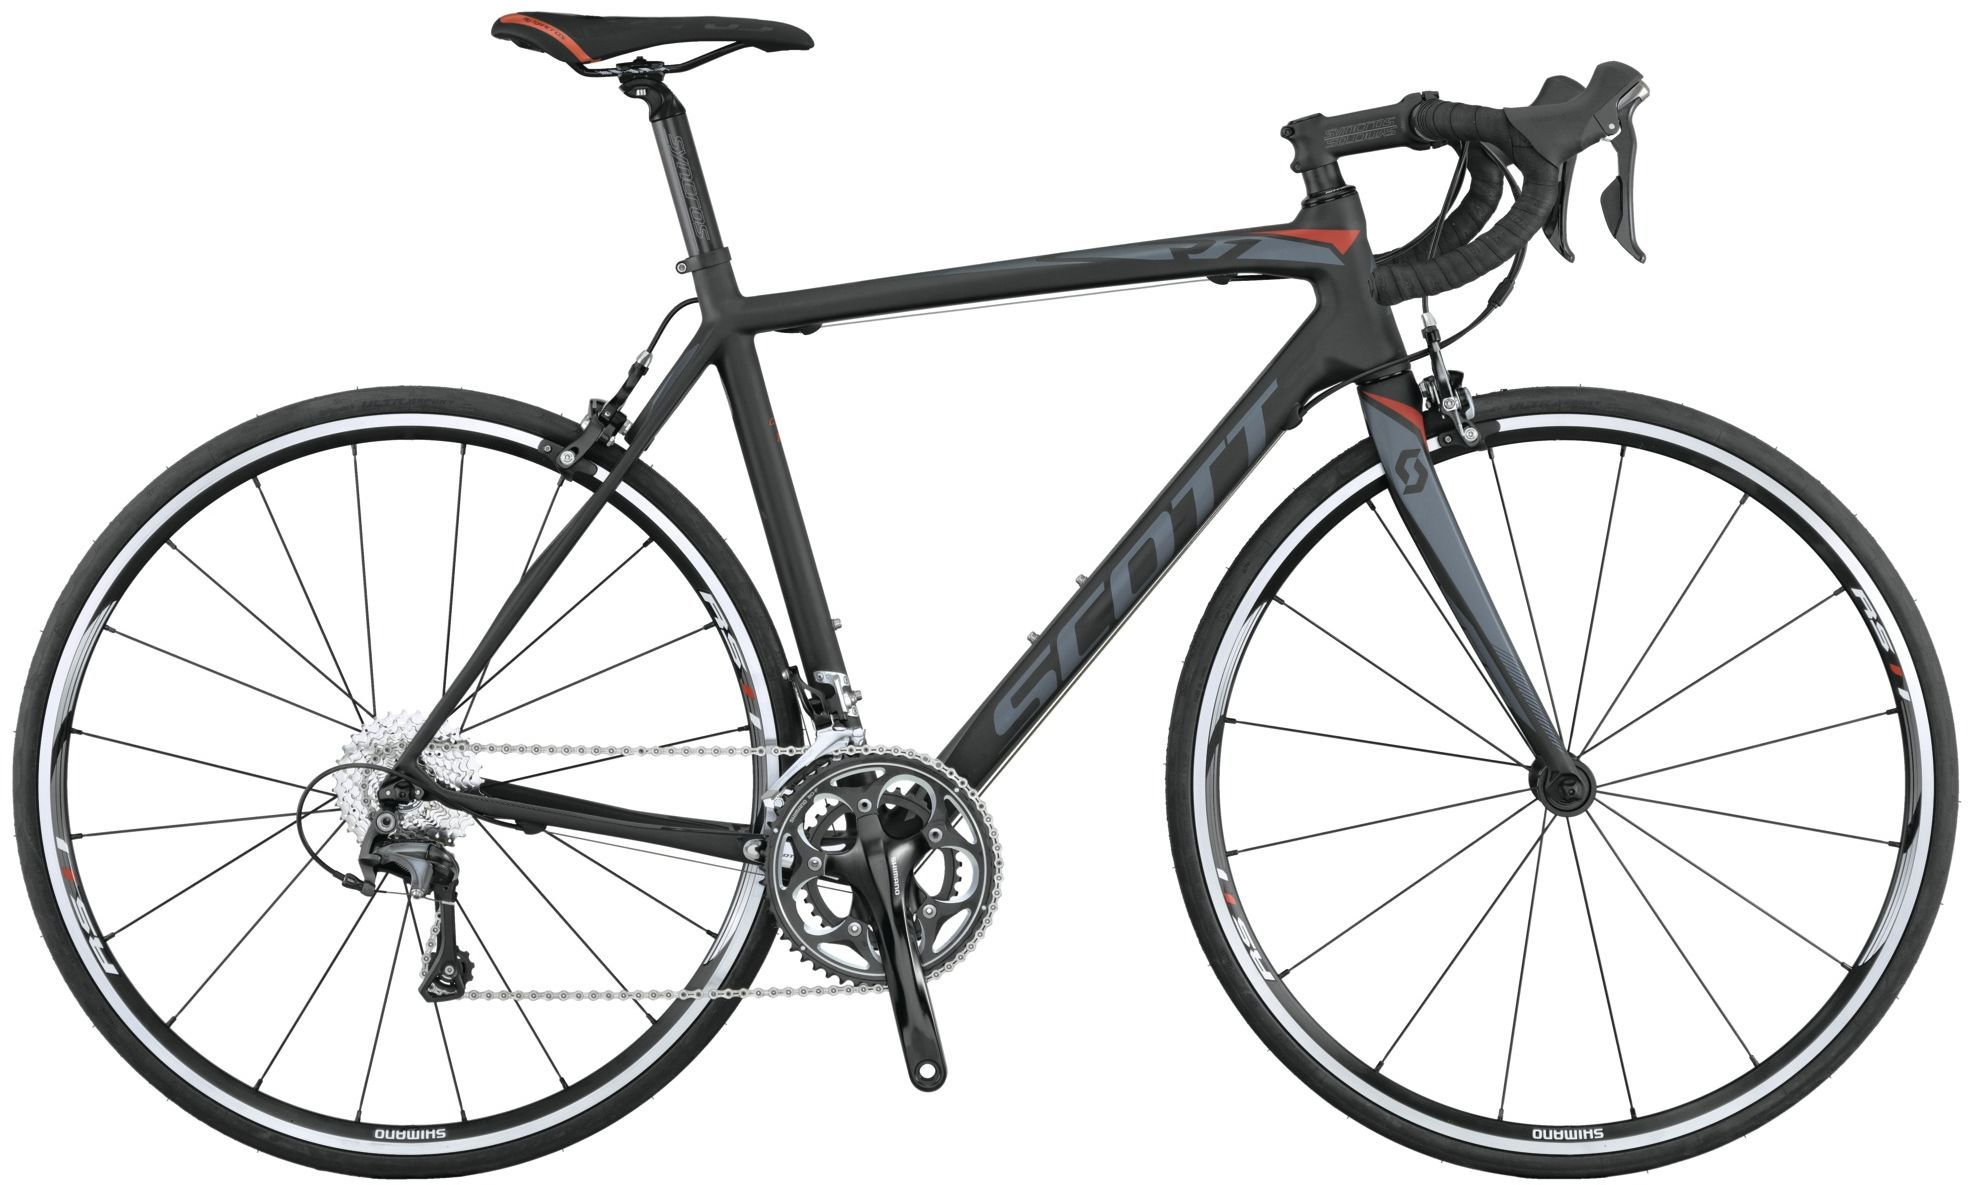 53f3c9f184b Scott CR1 10 2015 review - The Bike List